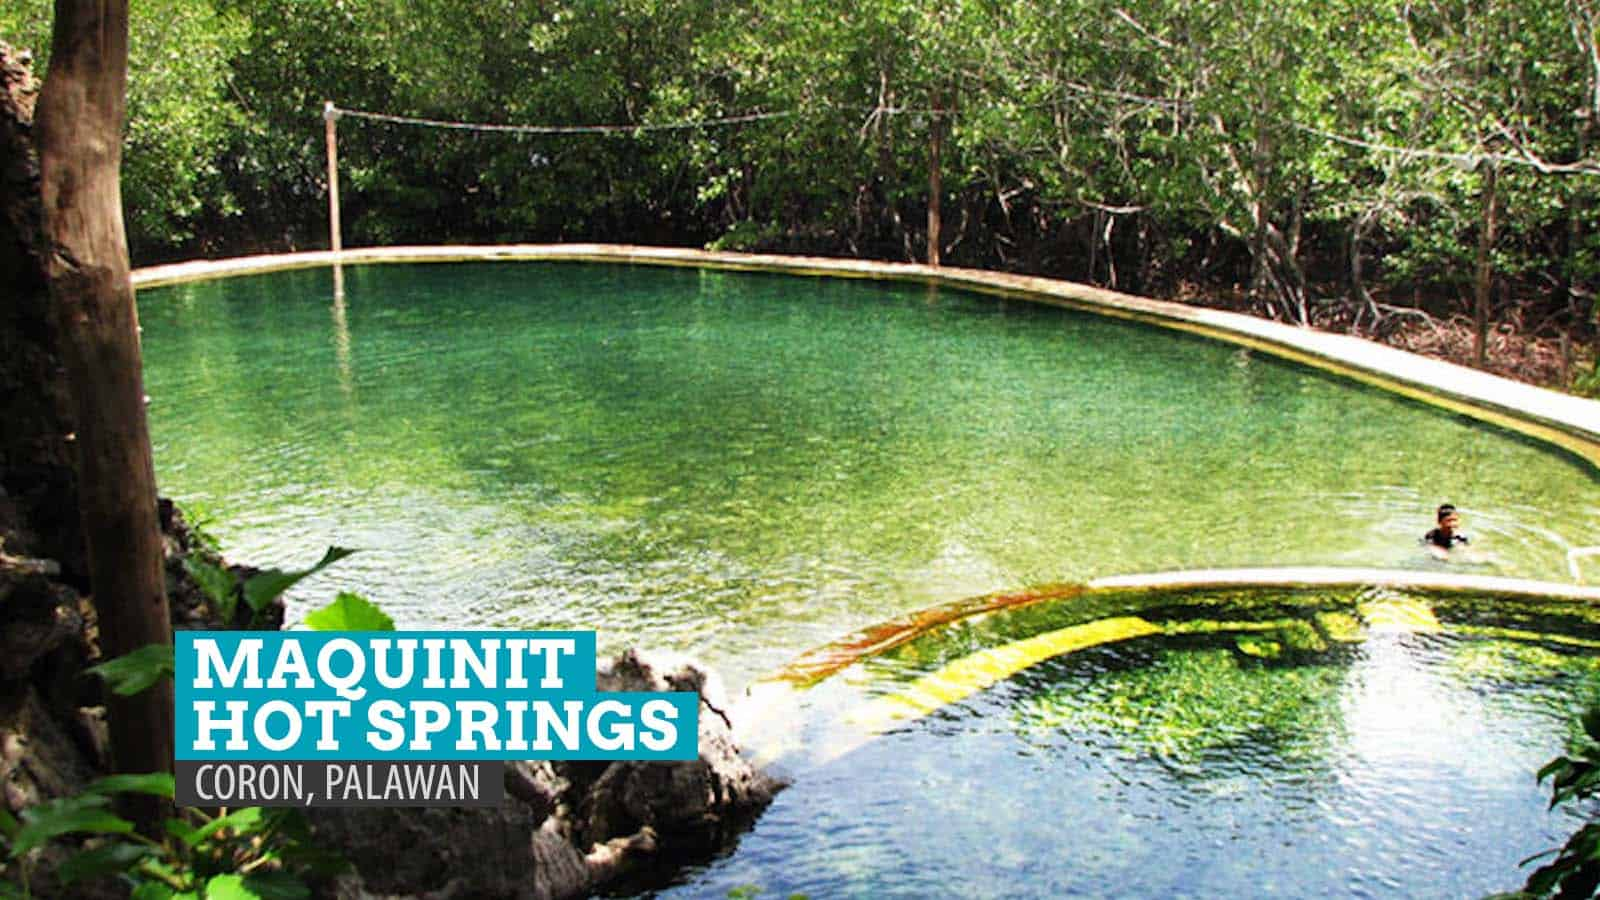 Maquinit Hot Springs: Tub Therapy in Coron, Palawan